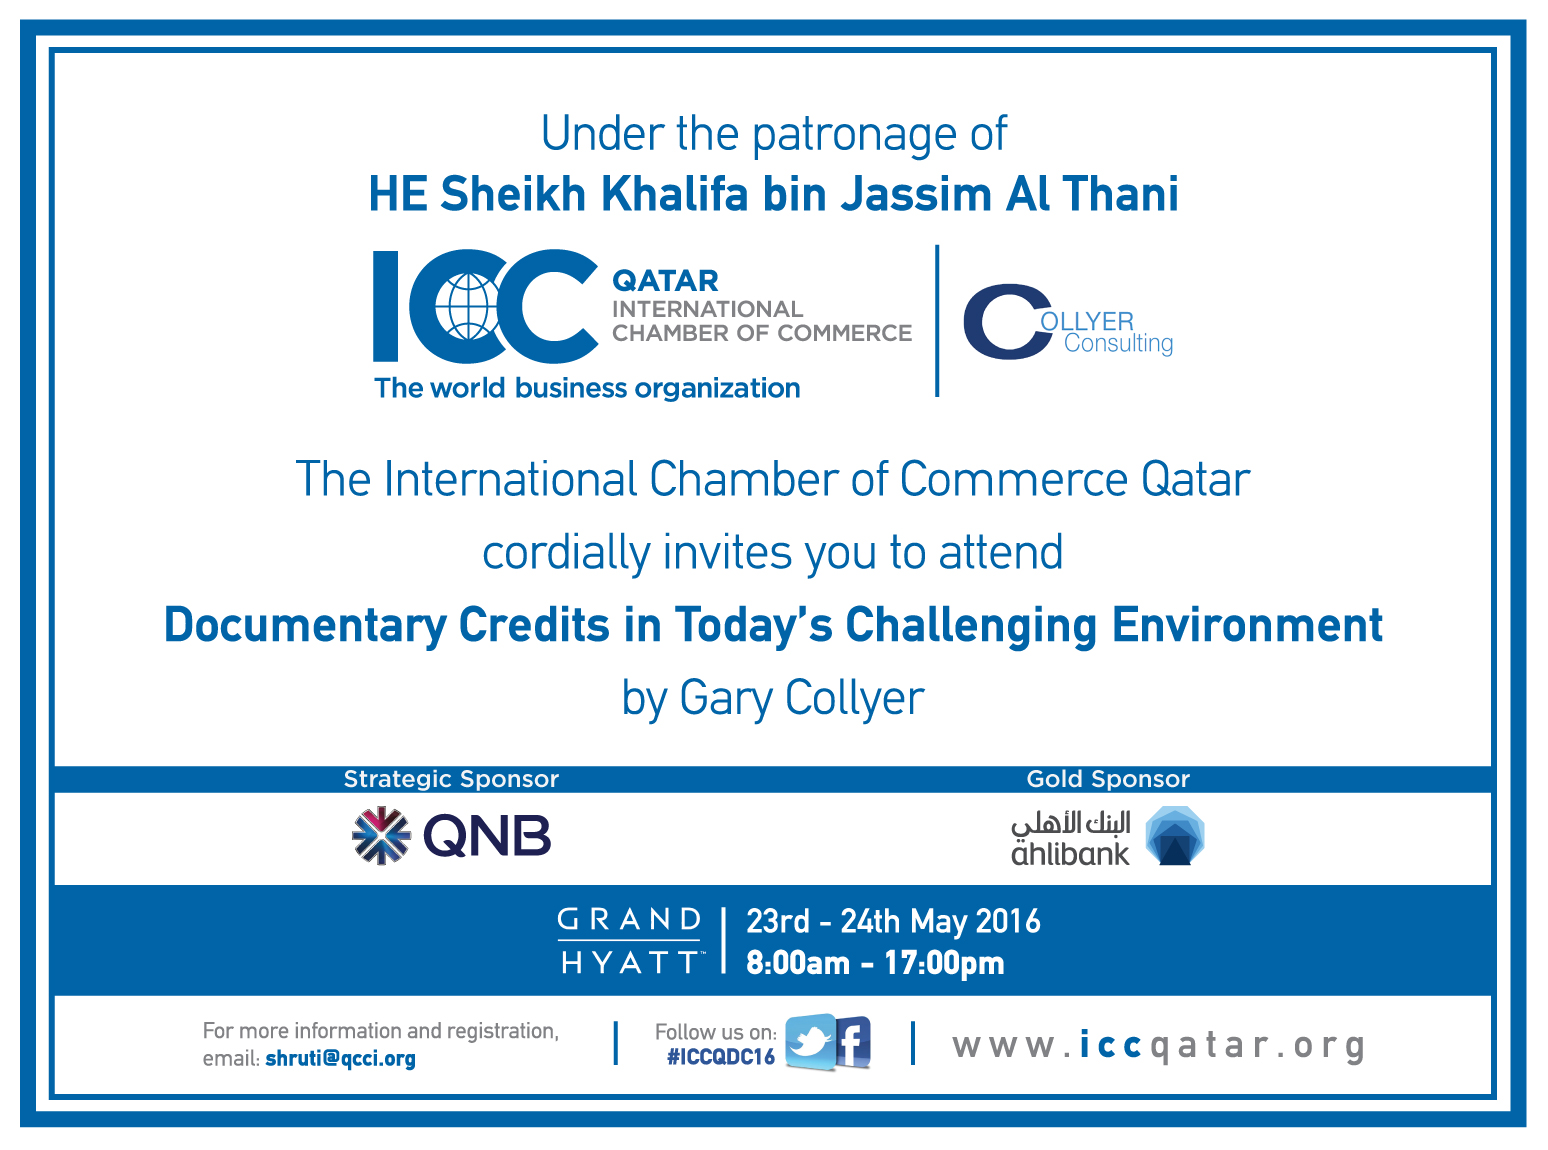 Documentary Credits in Today's Challenging Environment- by Gary Collyer